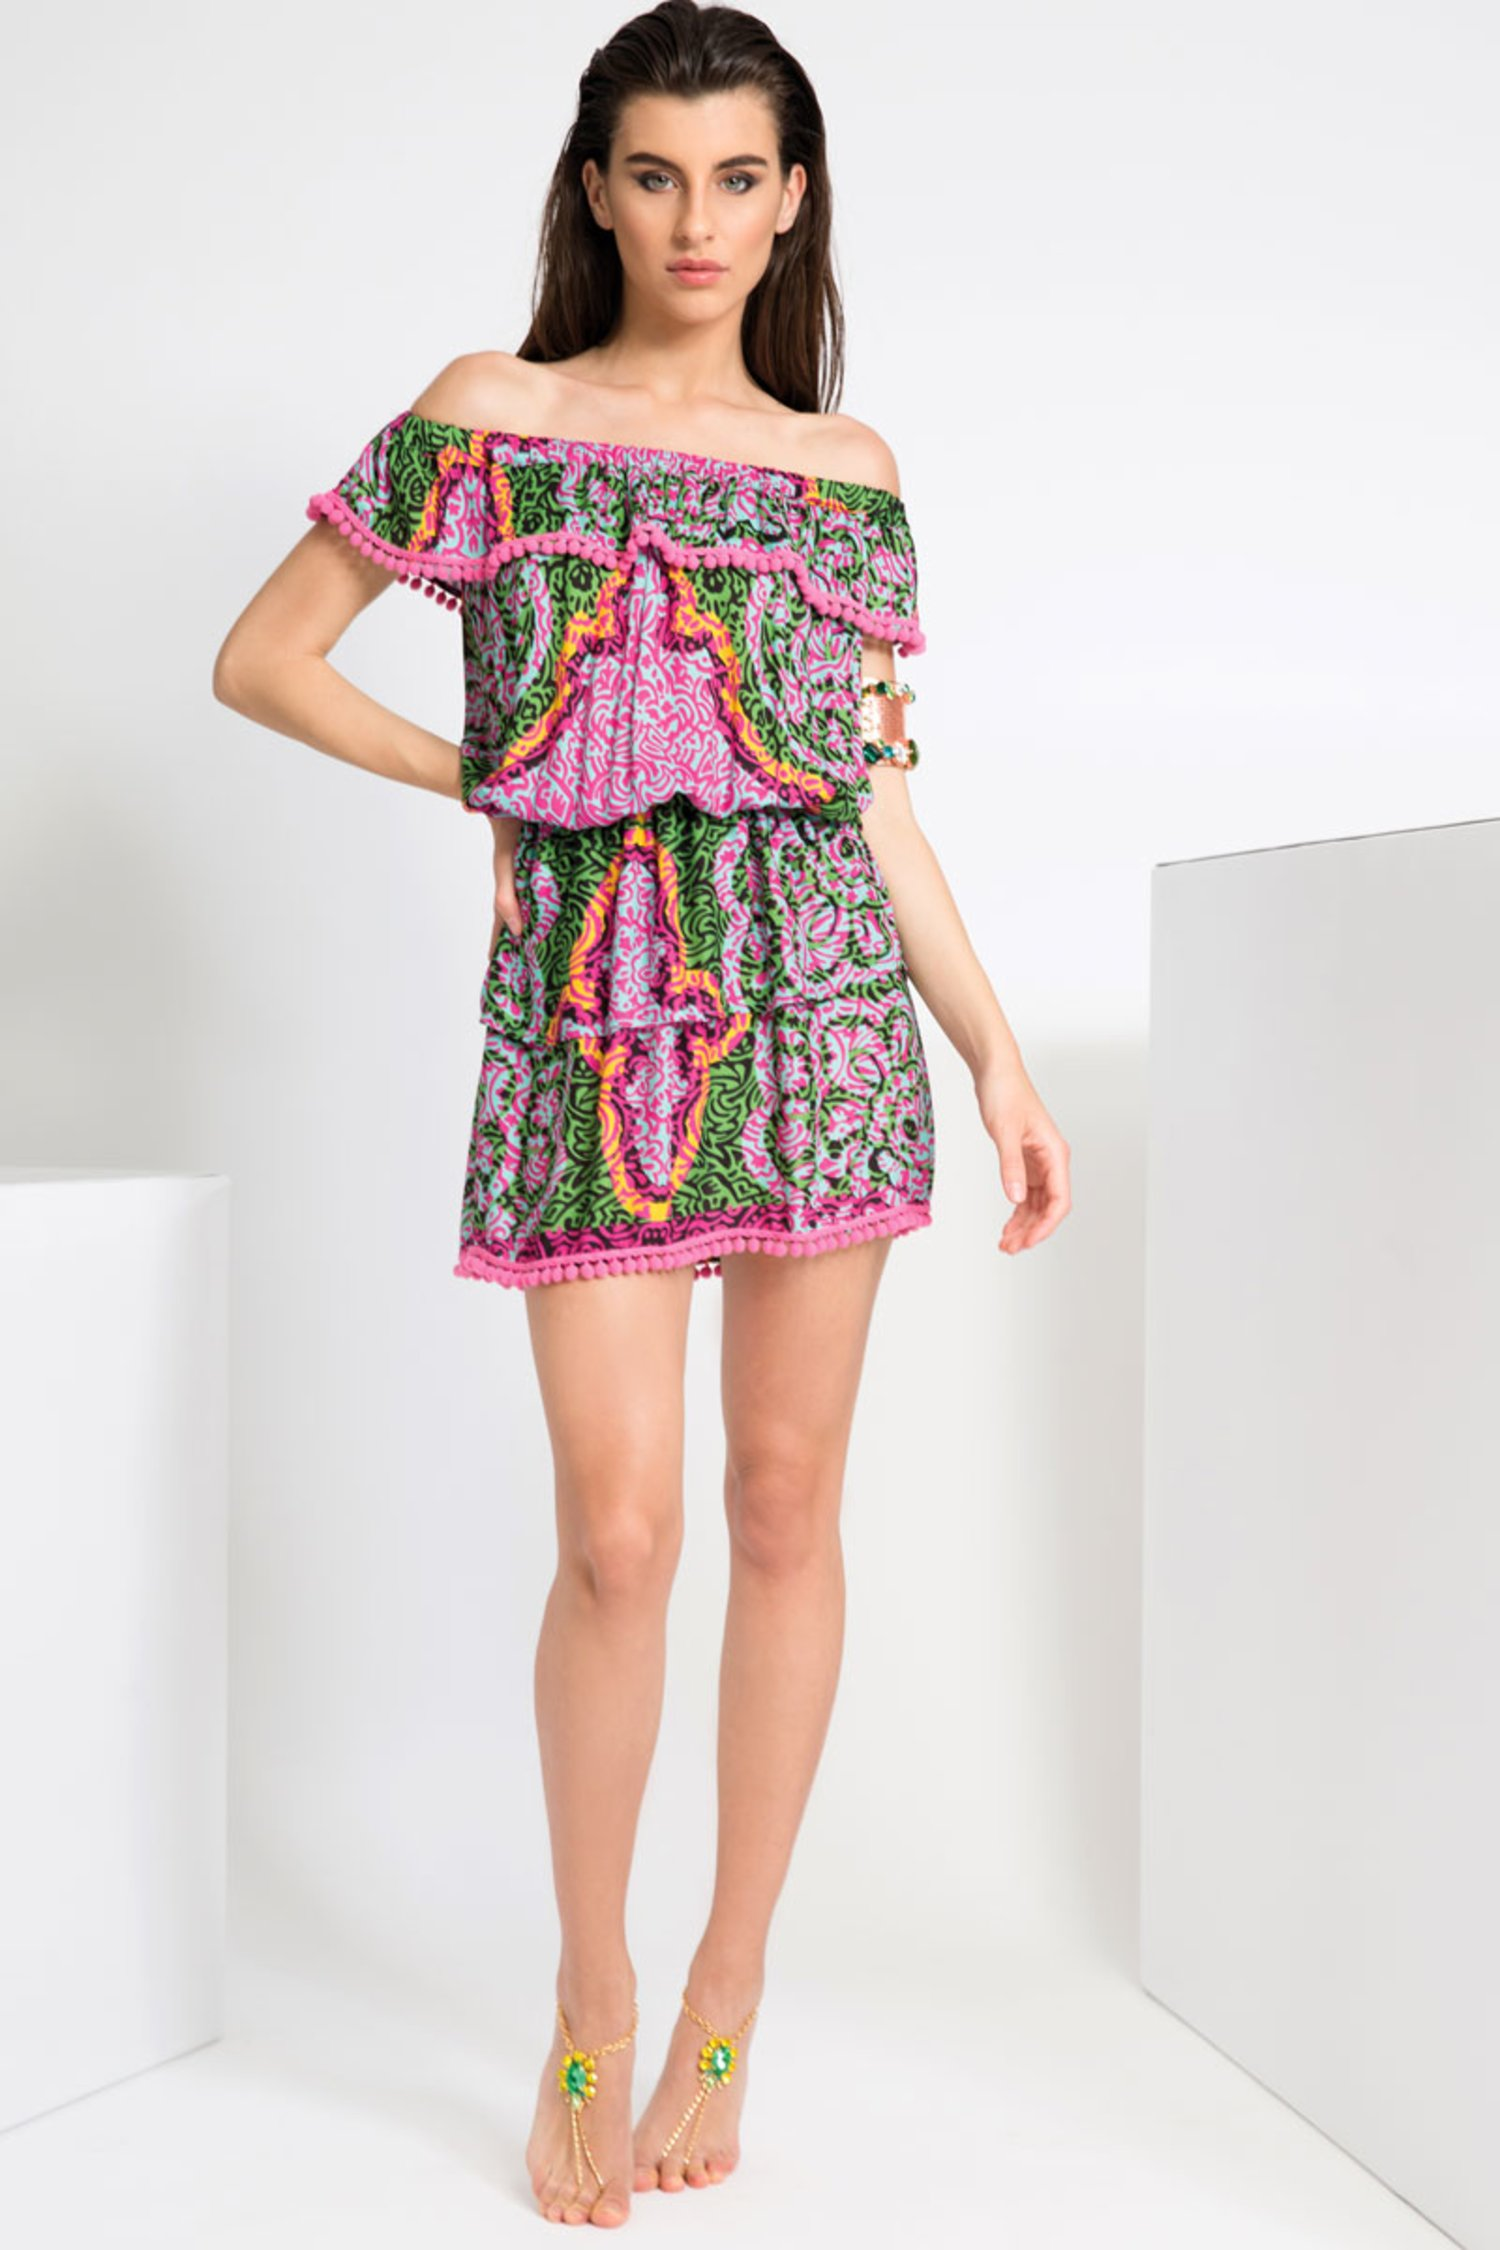 PRINTED VISCOSE SHORT DRESS WITH FRILLS AND POM-POM - India Pop Fuxia